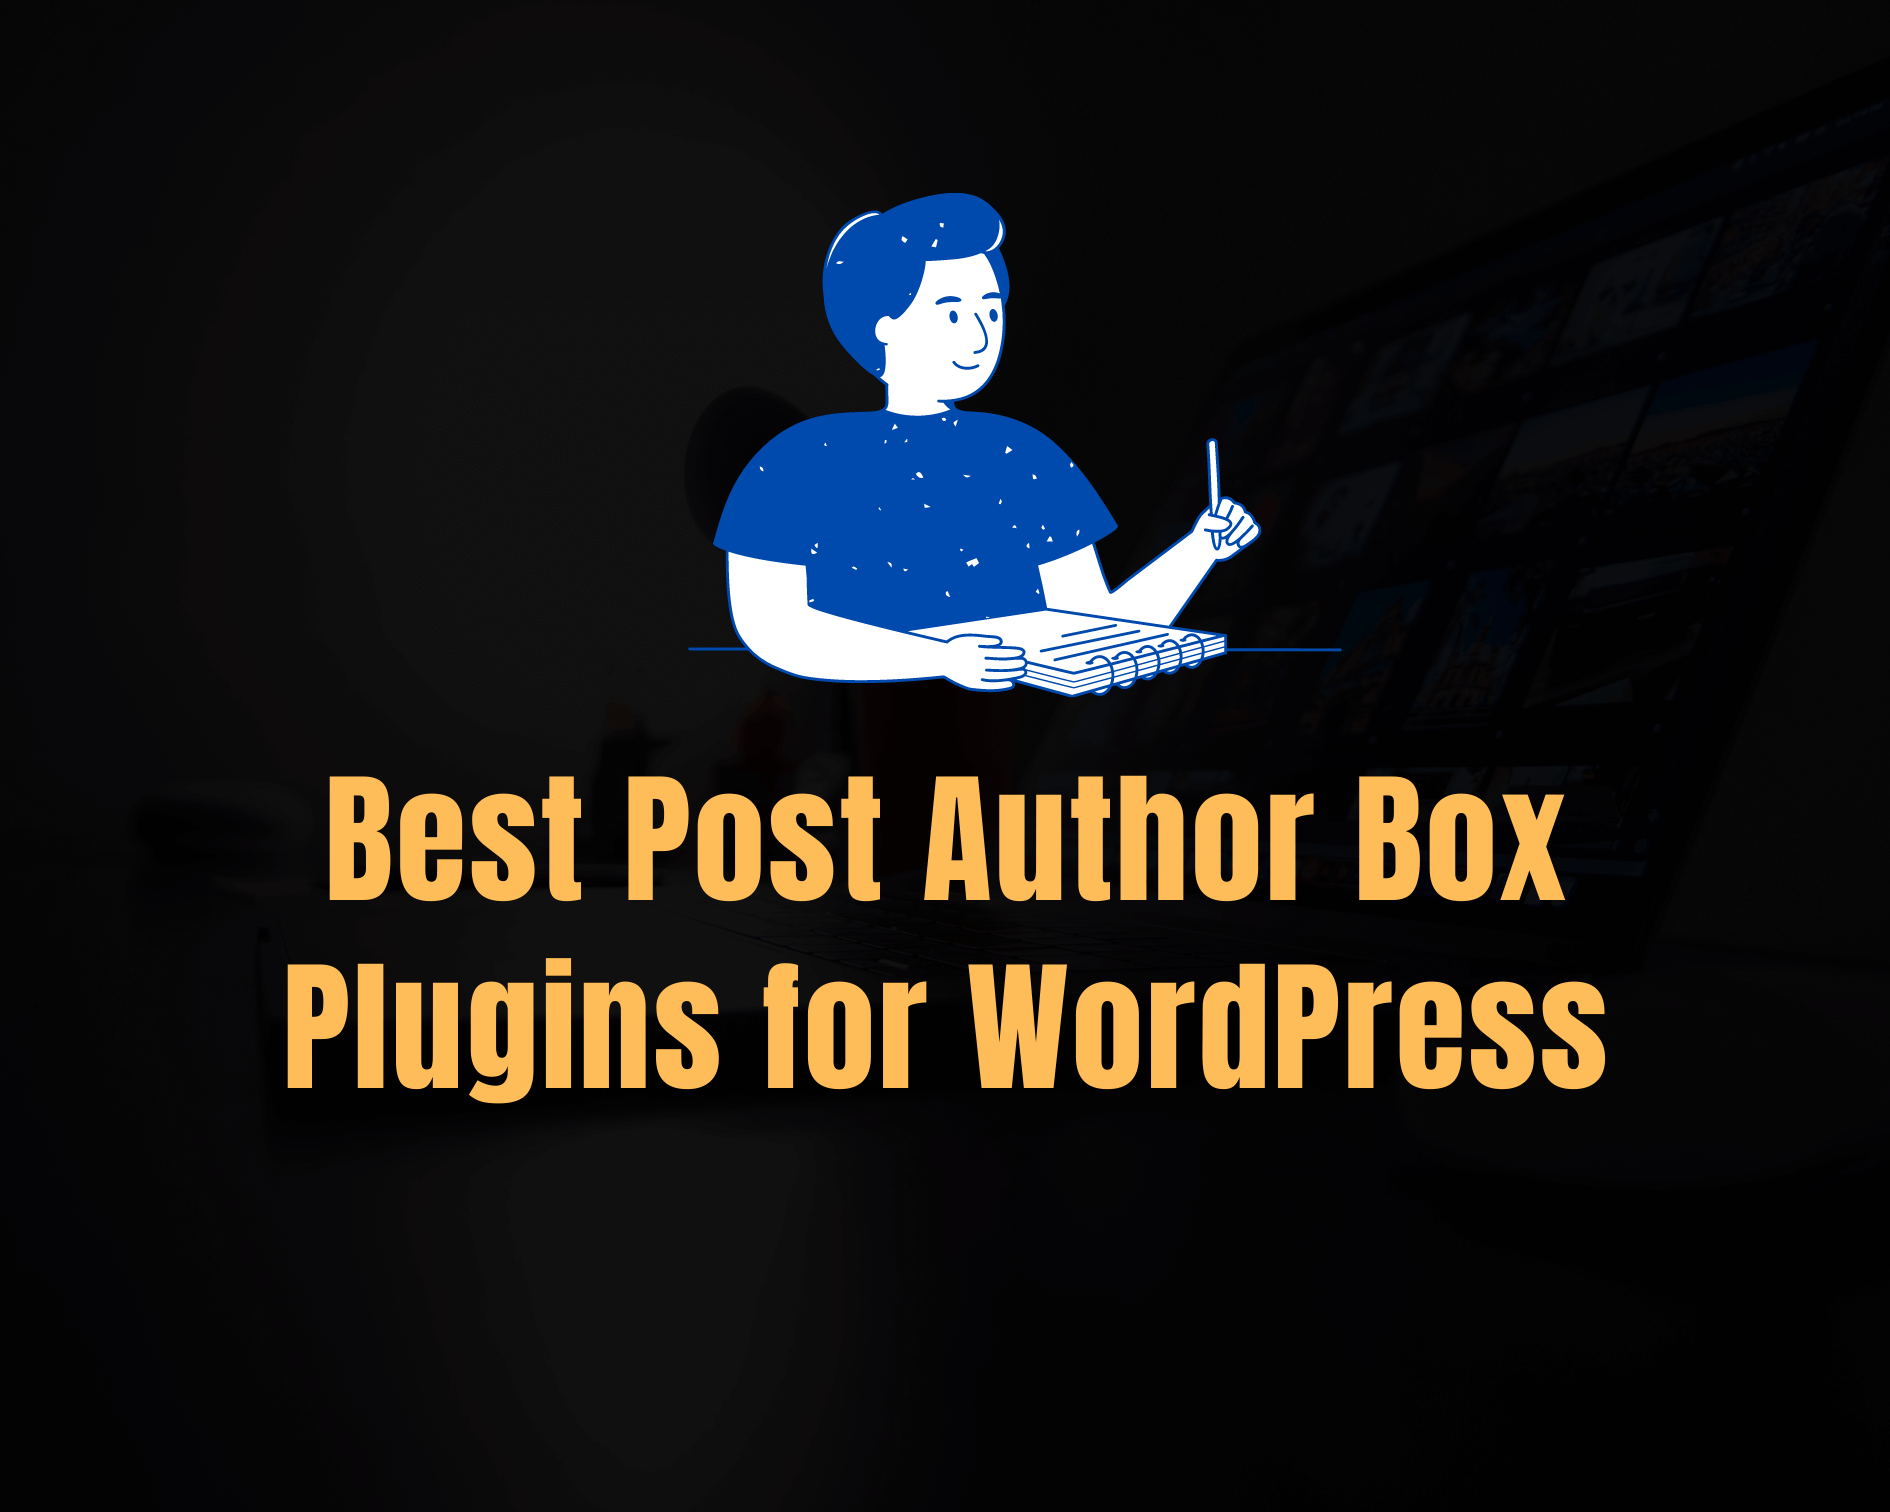 5 Best Post Author Box Plugins for WordPress in 2021